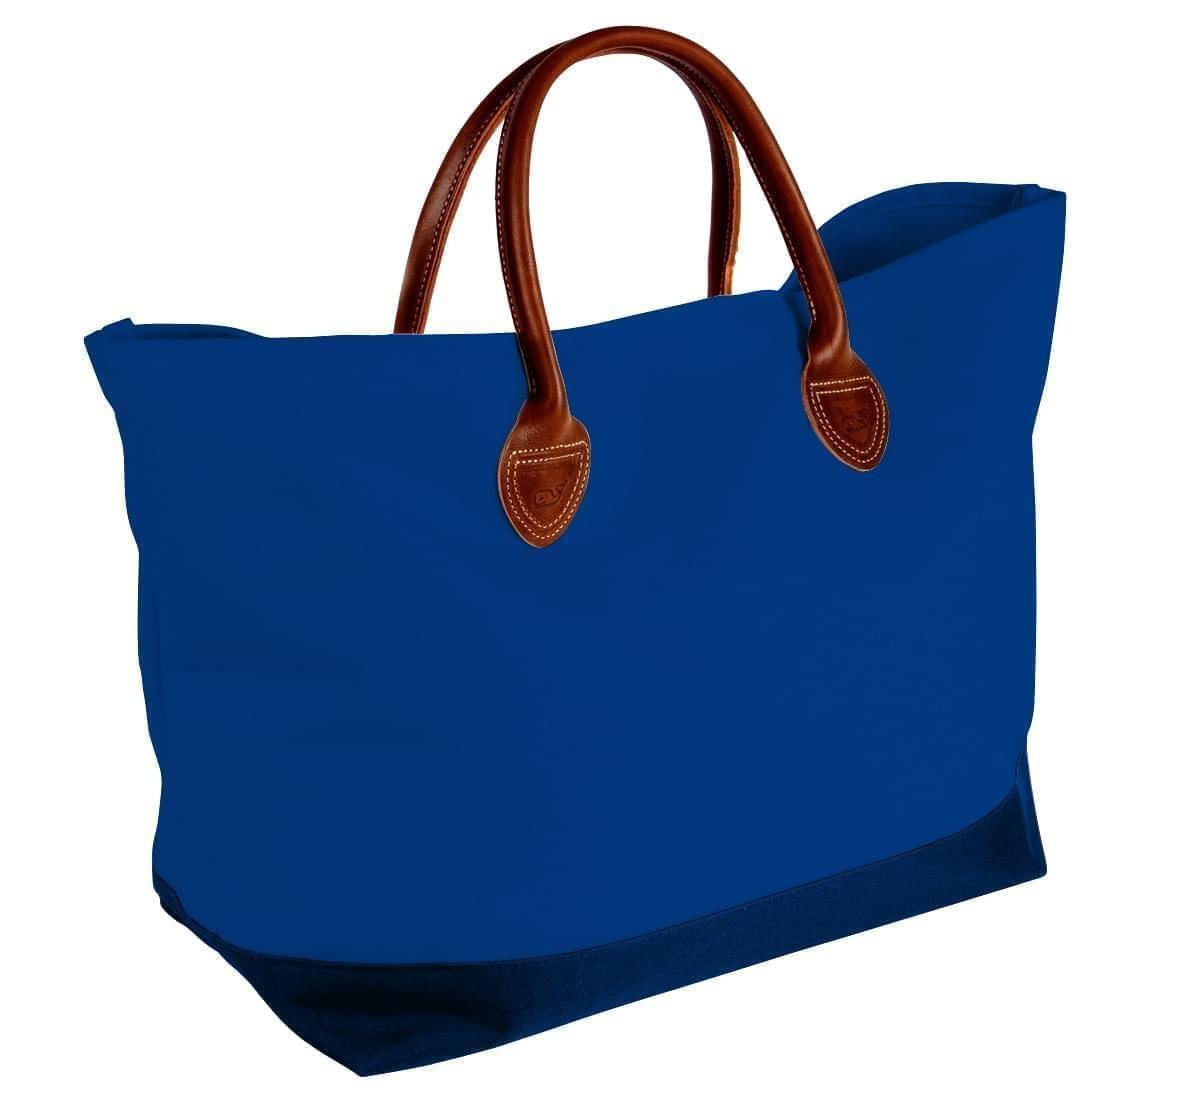 USA Made Canvas Leather Handle Totes, Royal Blue-Navy, 10899-IF9